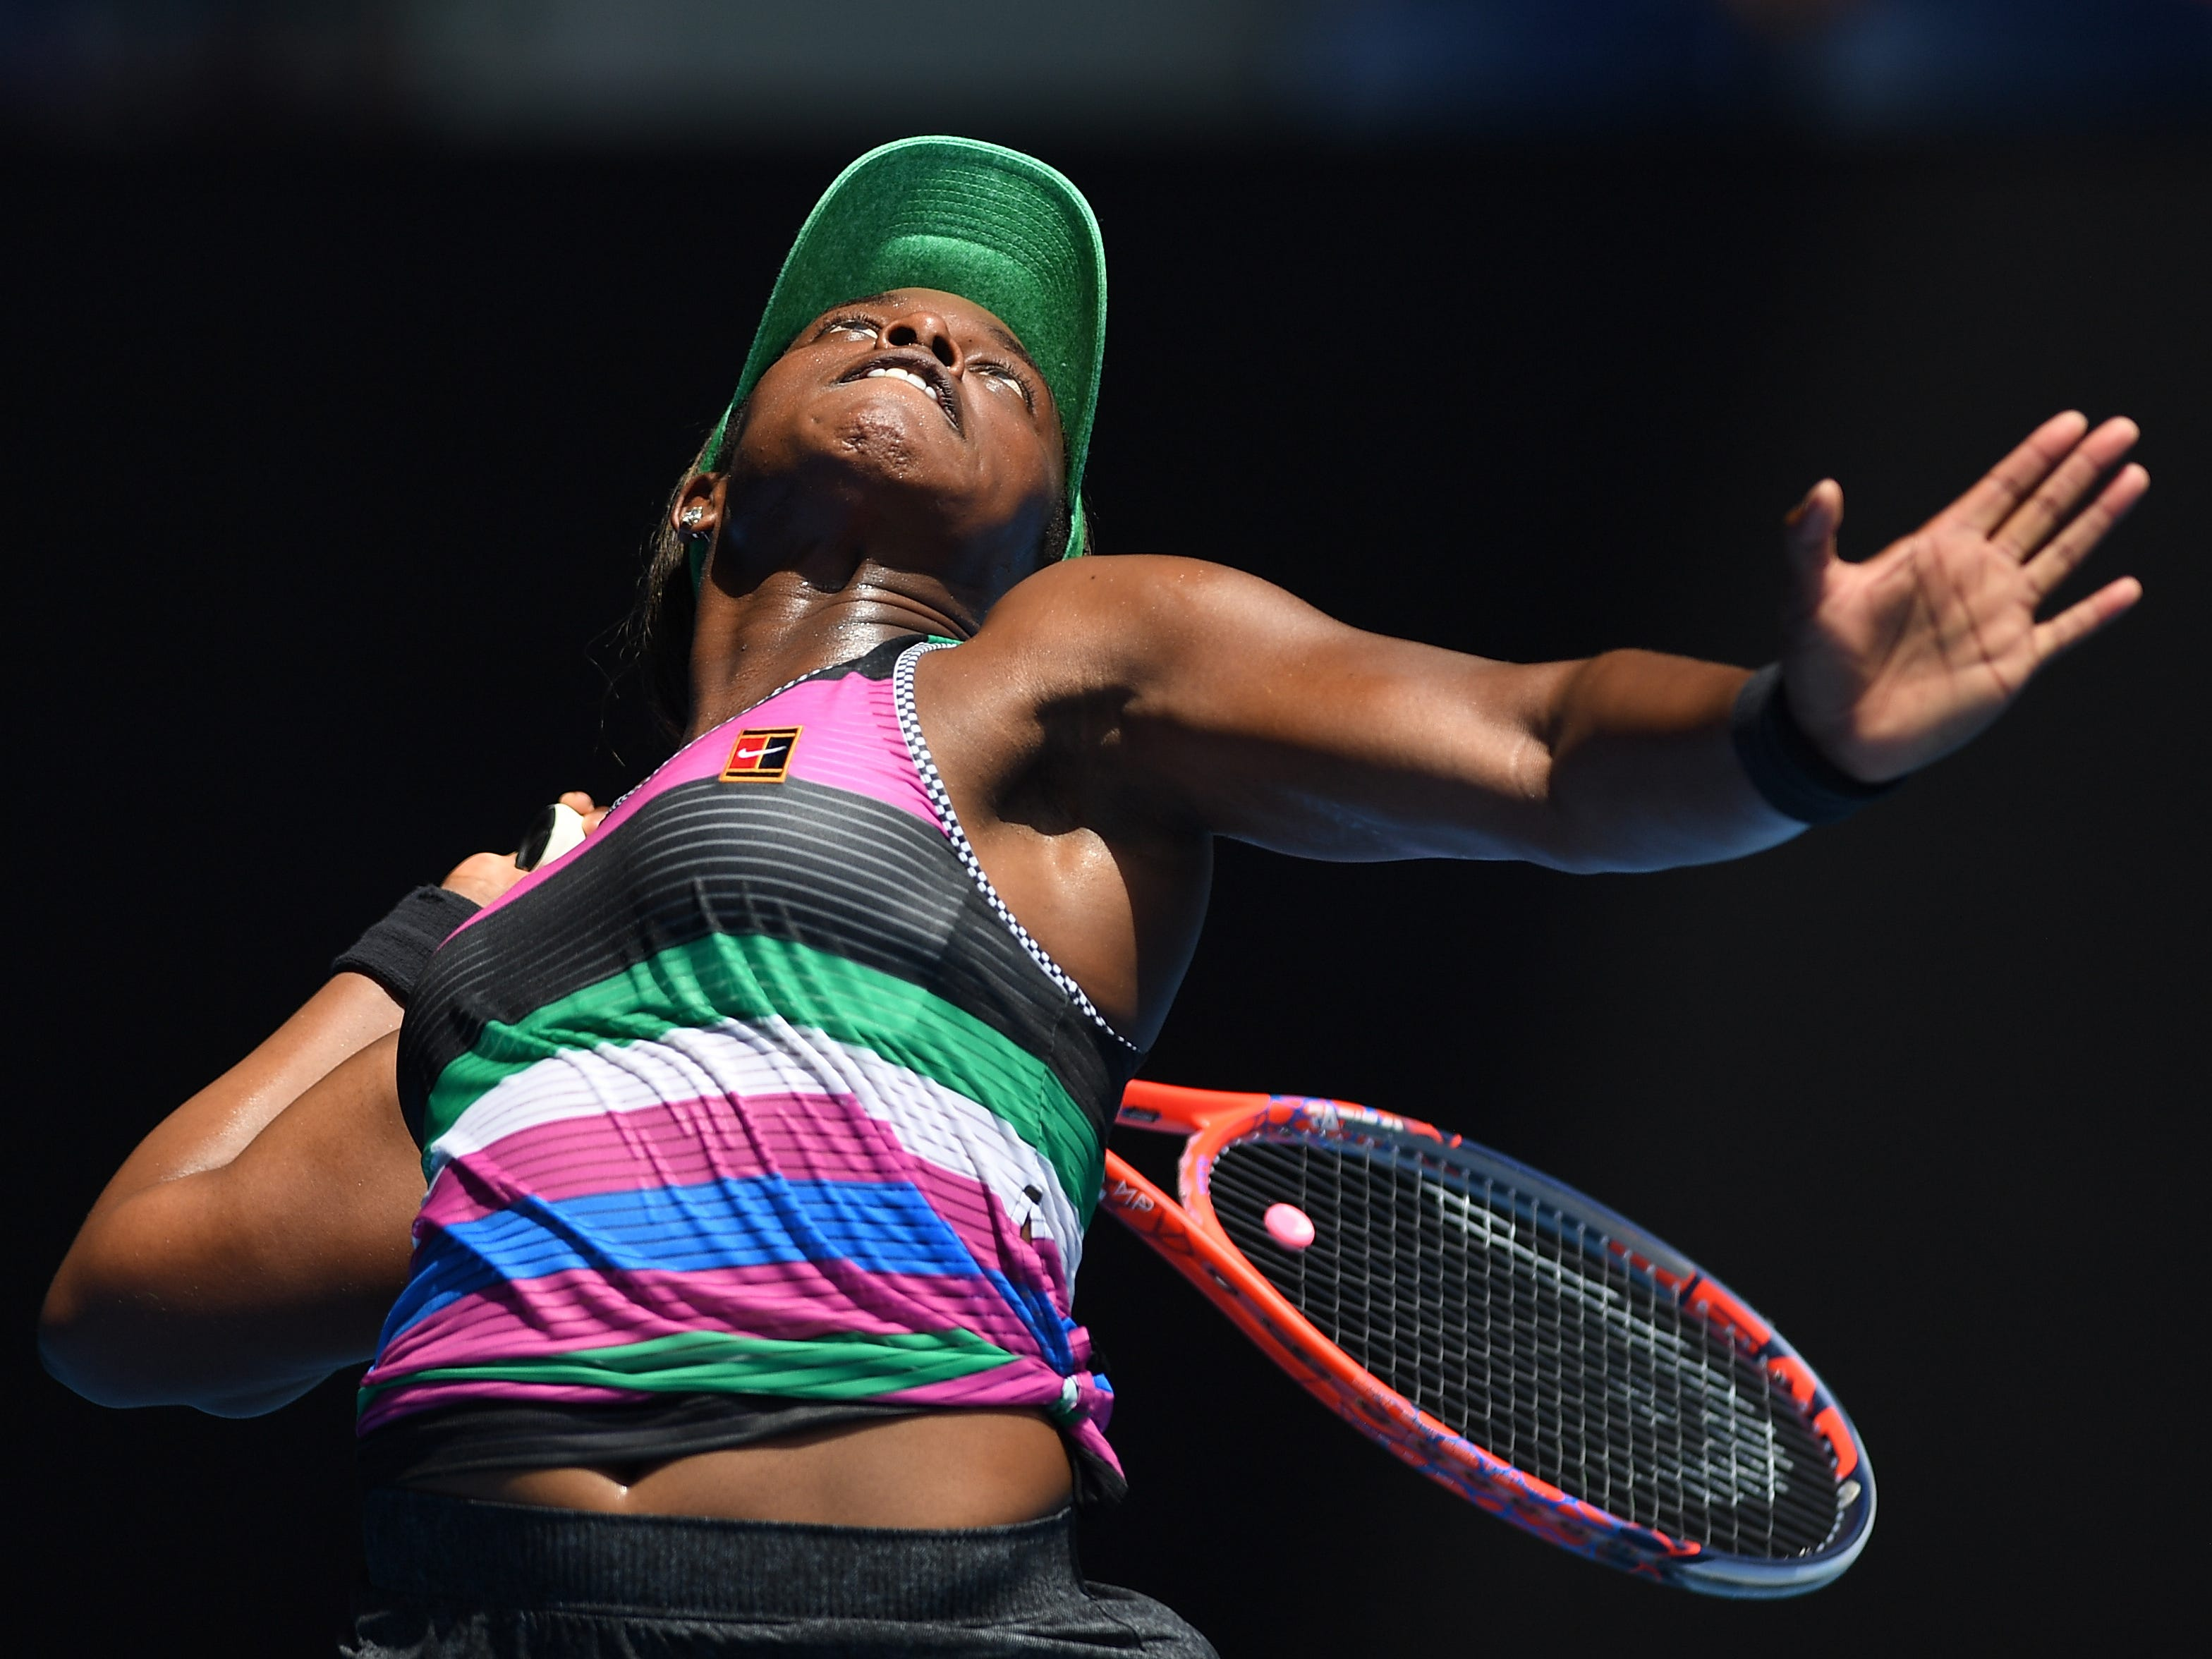 No. 5 Sloane Stephens cruised to a 6-3, 6-1 win over Hungary's Timea Babos in the second round.